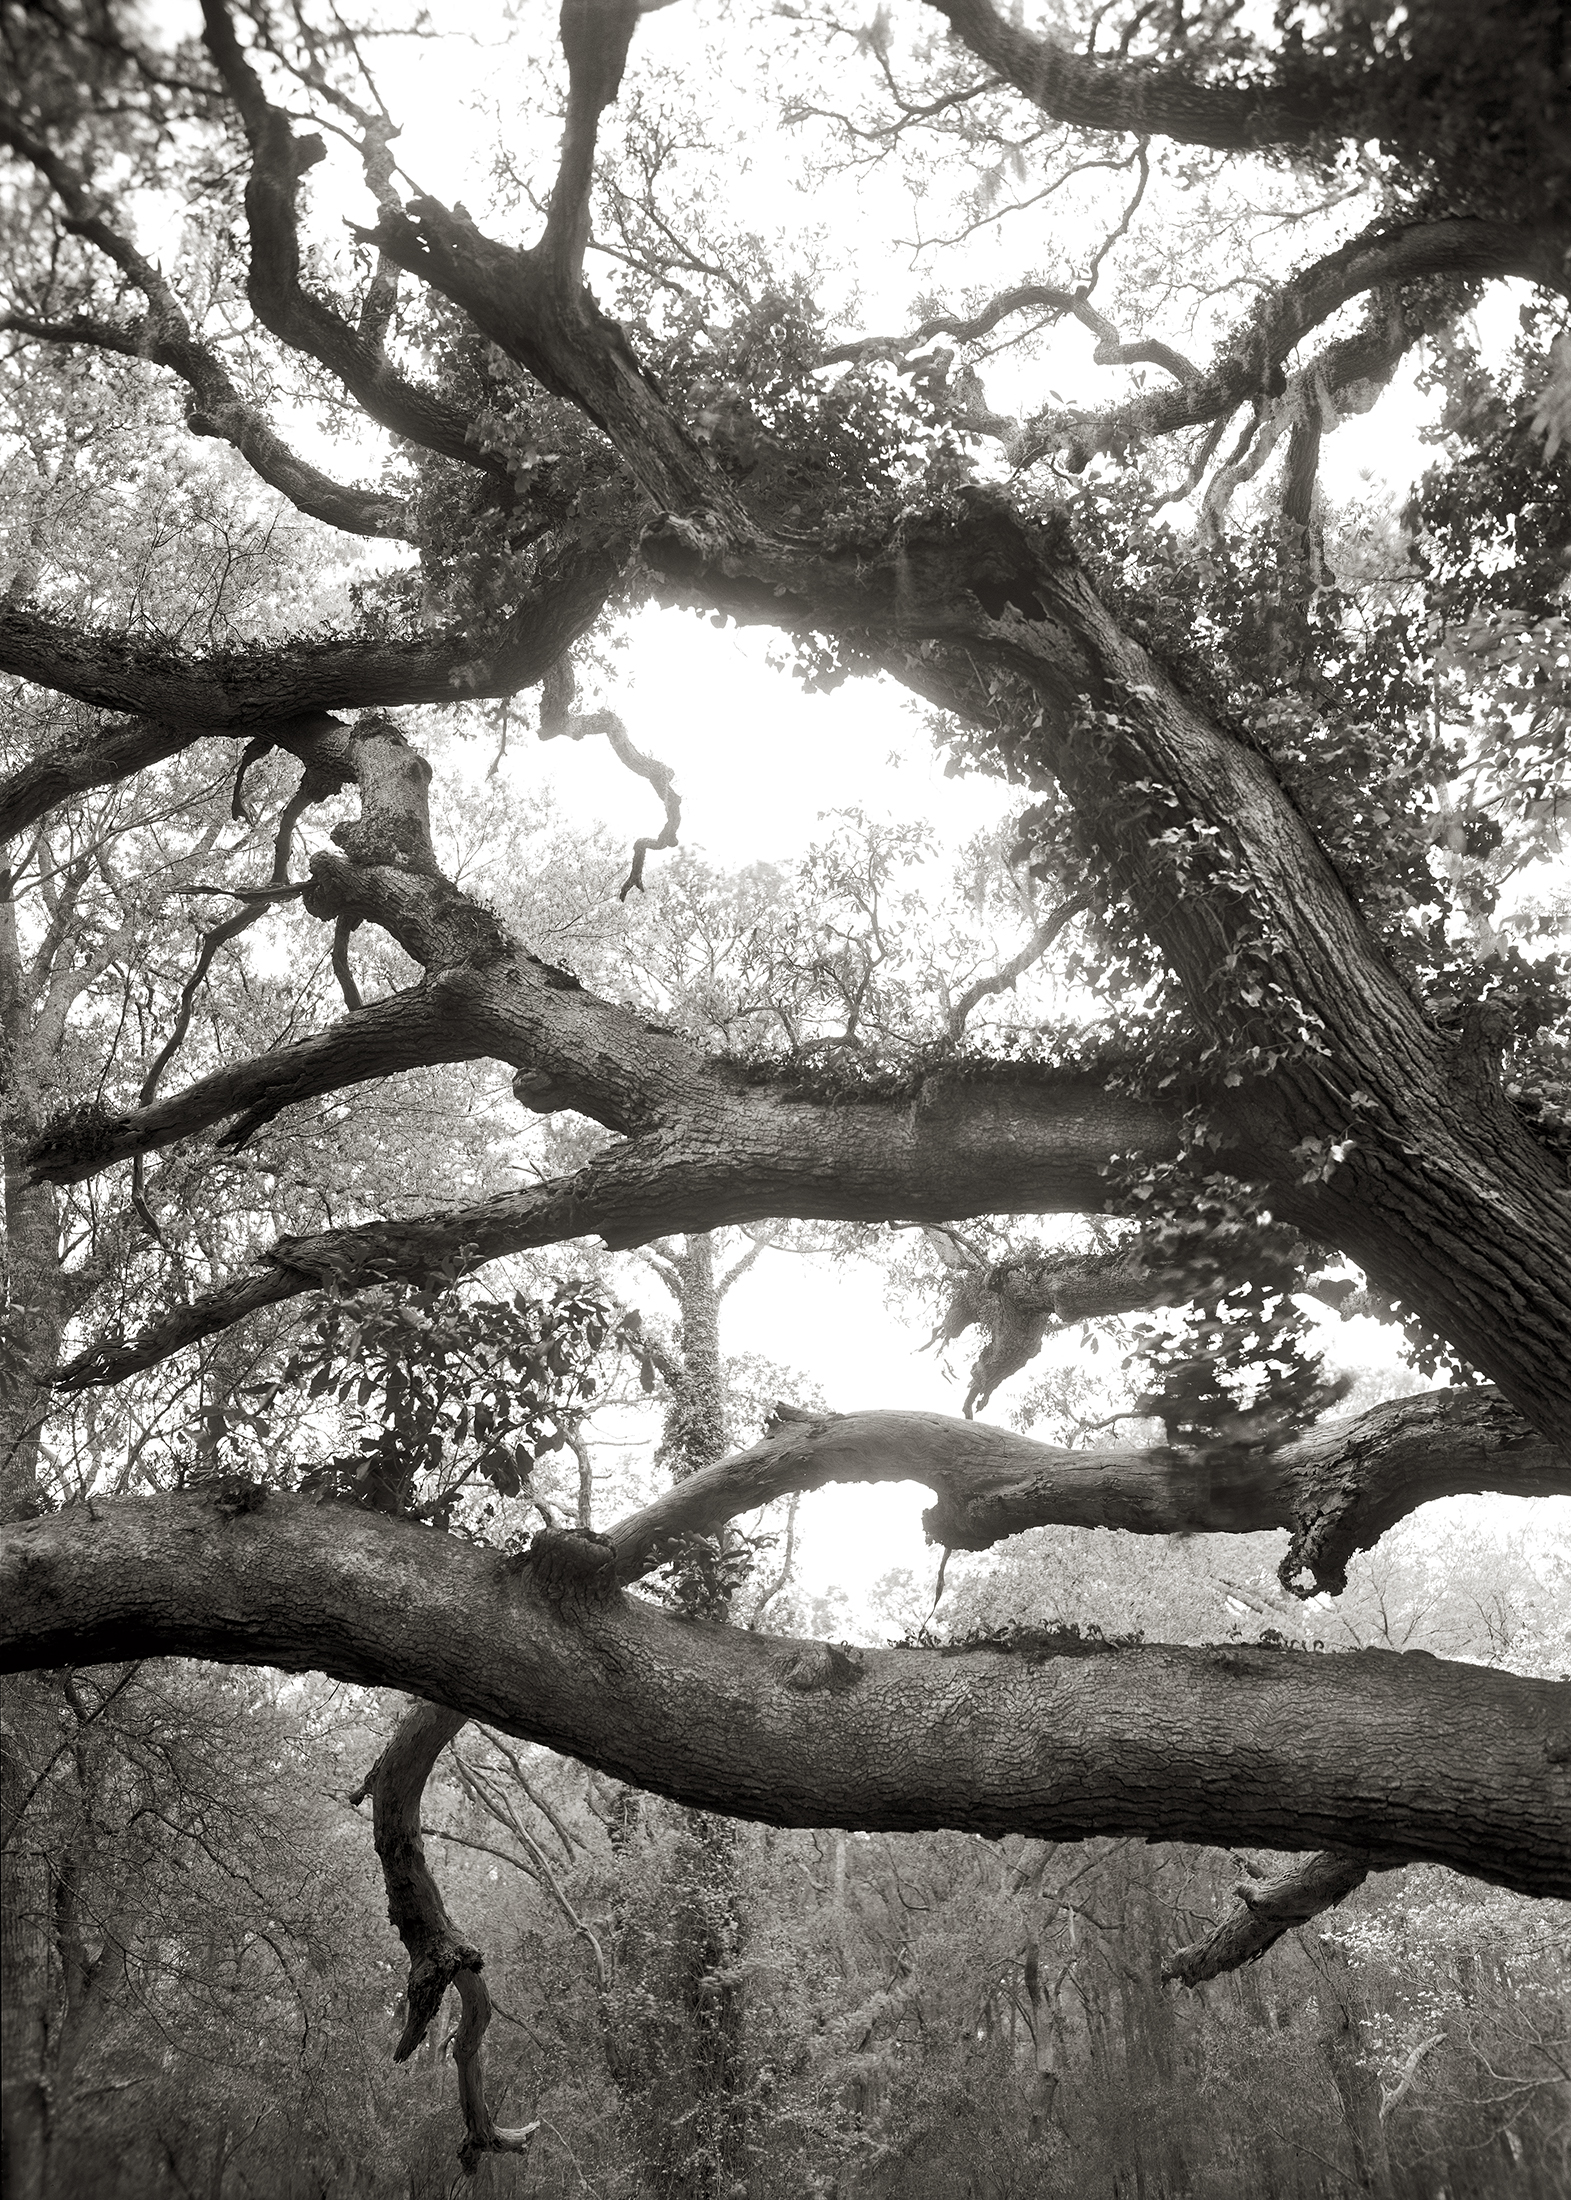 LIMBS, OVER ONE HUNDRED YEARS OLD